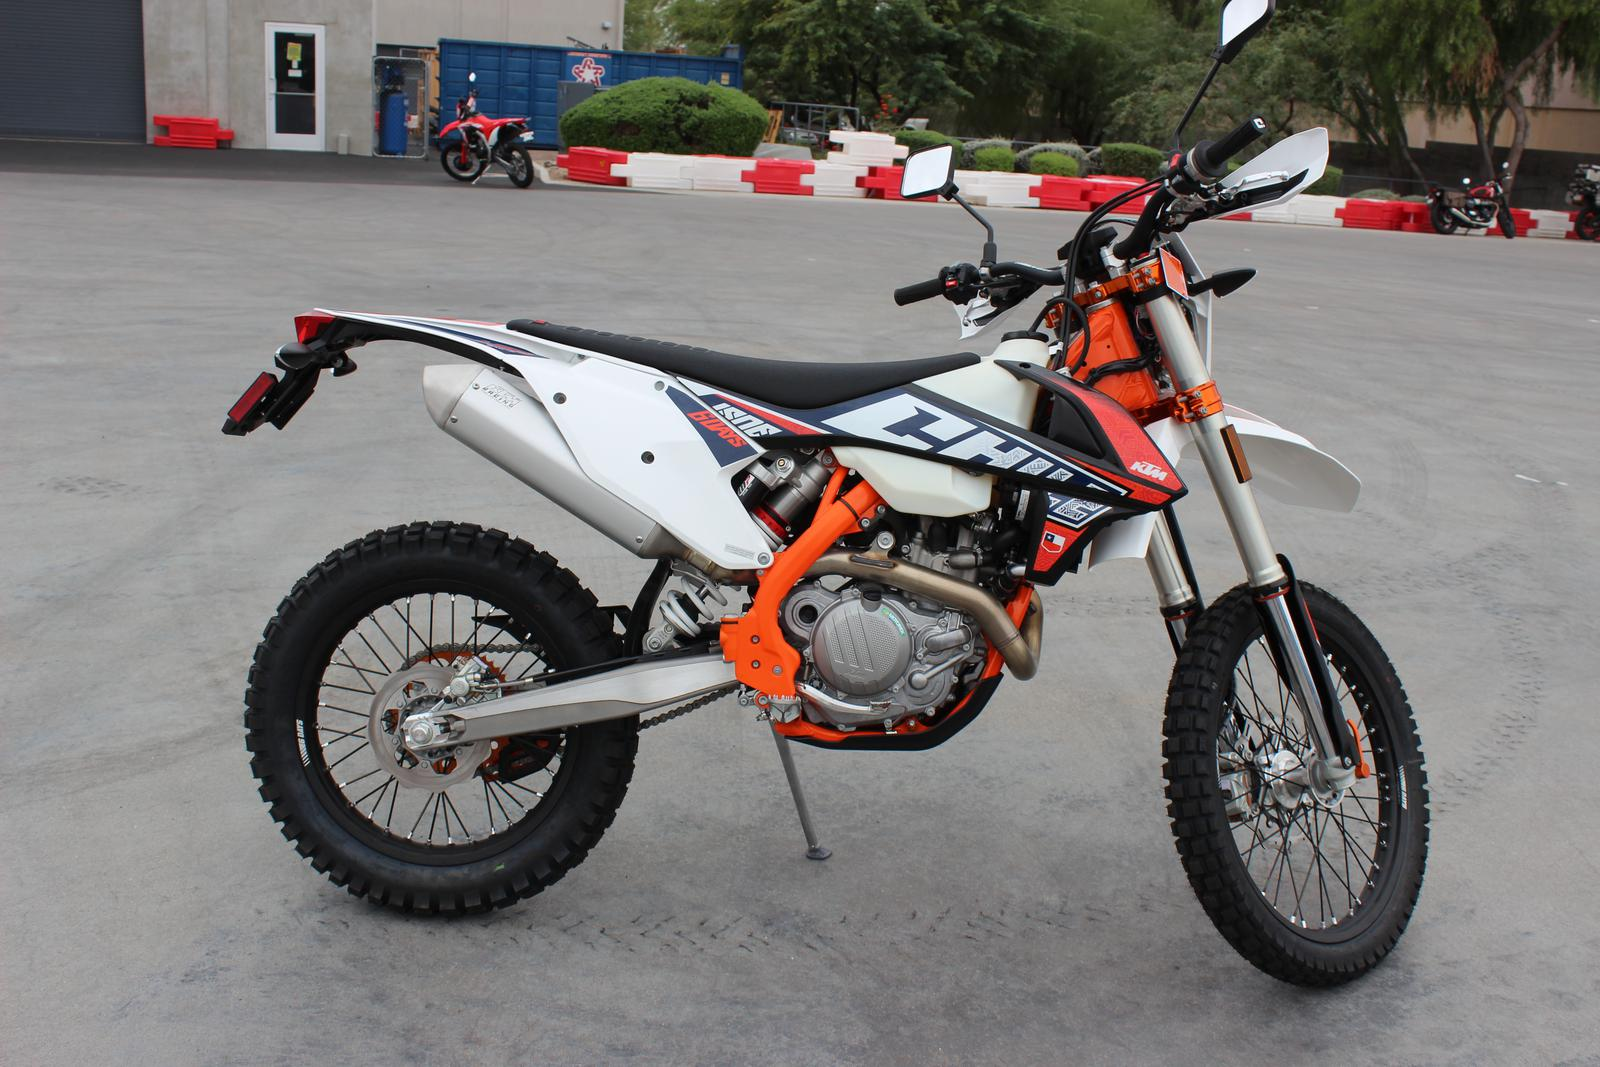 2019 Ktm 450 Exc F Six Days For Sale In Scottsdale Az Go Wire Schematic Smr Motorcycles 480 609 1800